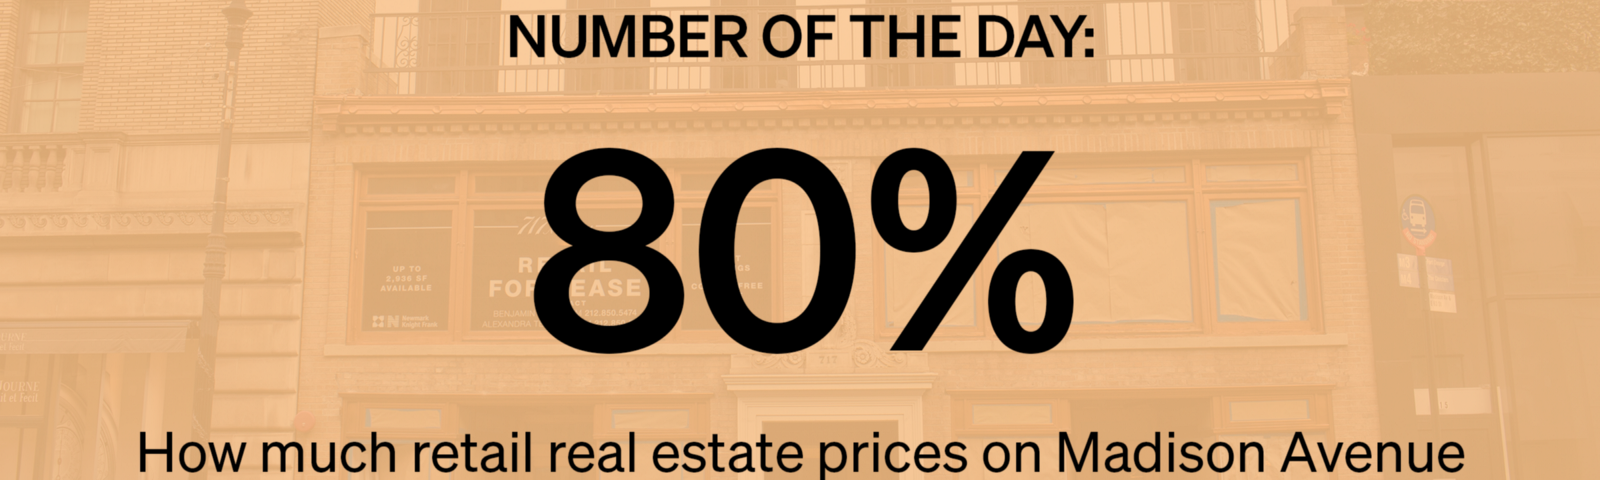 80%—How much retail real estate prices on Madison Avenue have dropped from their peak in 2014